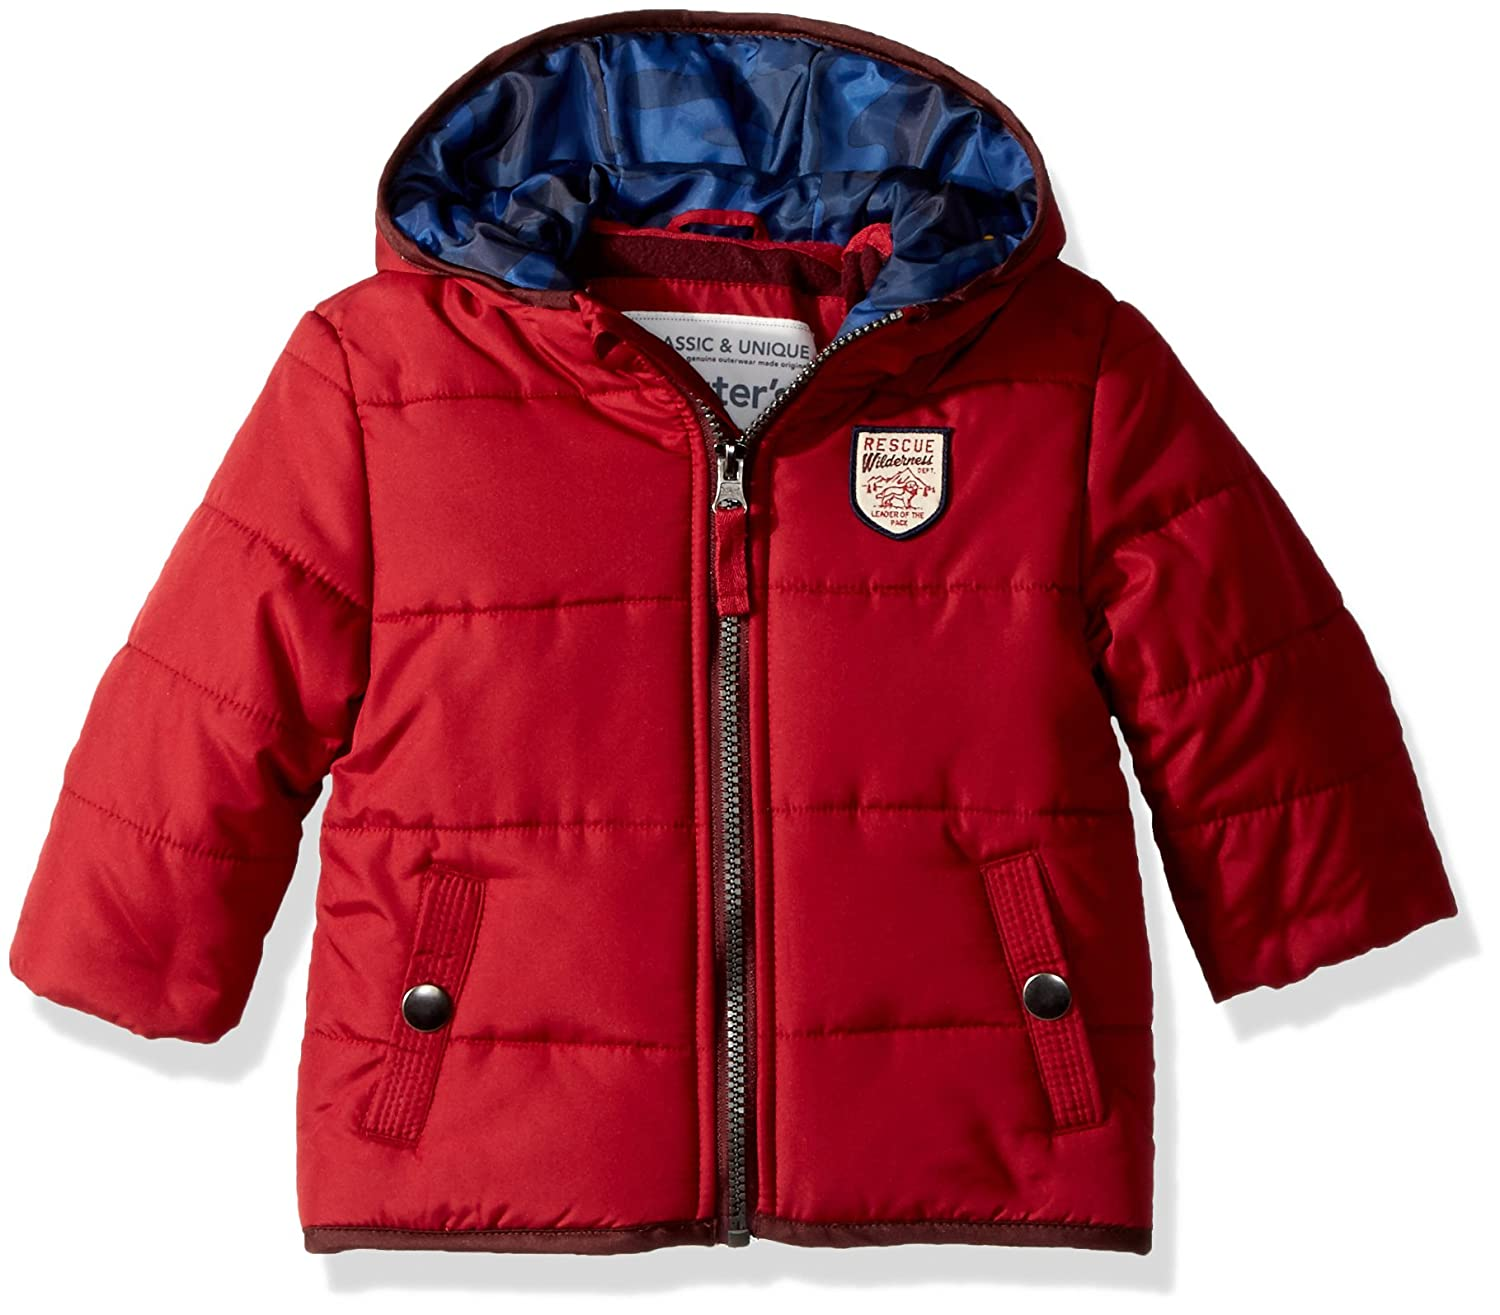 Carter's Baby-Boys Baby Boys Heavyweight Classic Bubble Jacket Red 24MO Amerex Group C216630-HO-RED-24MO